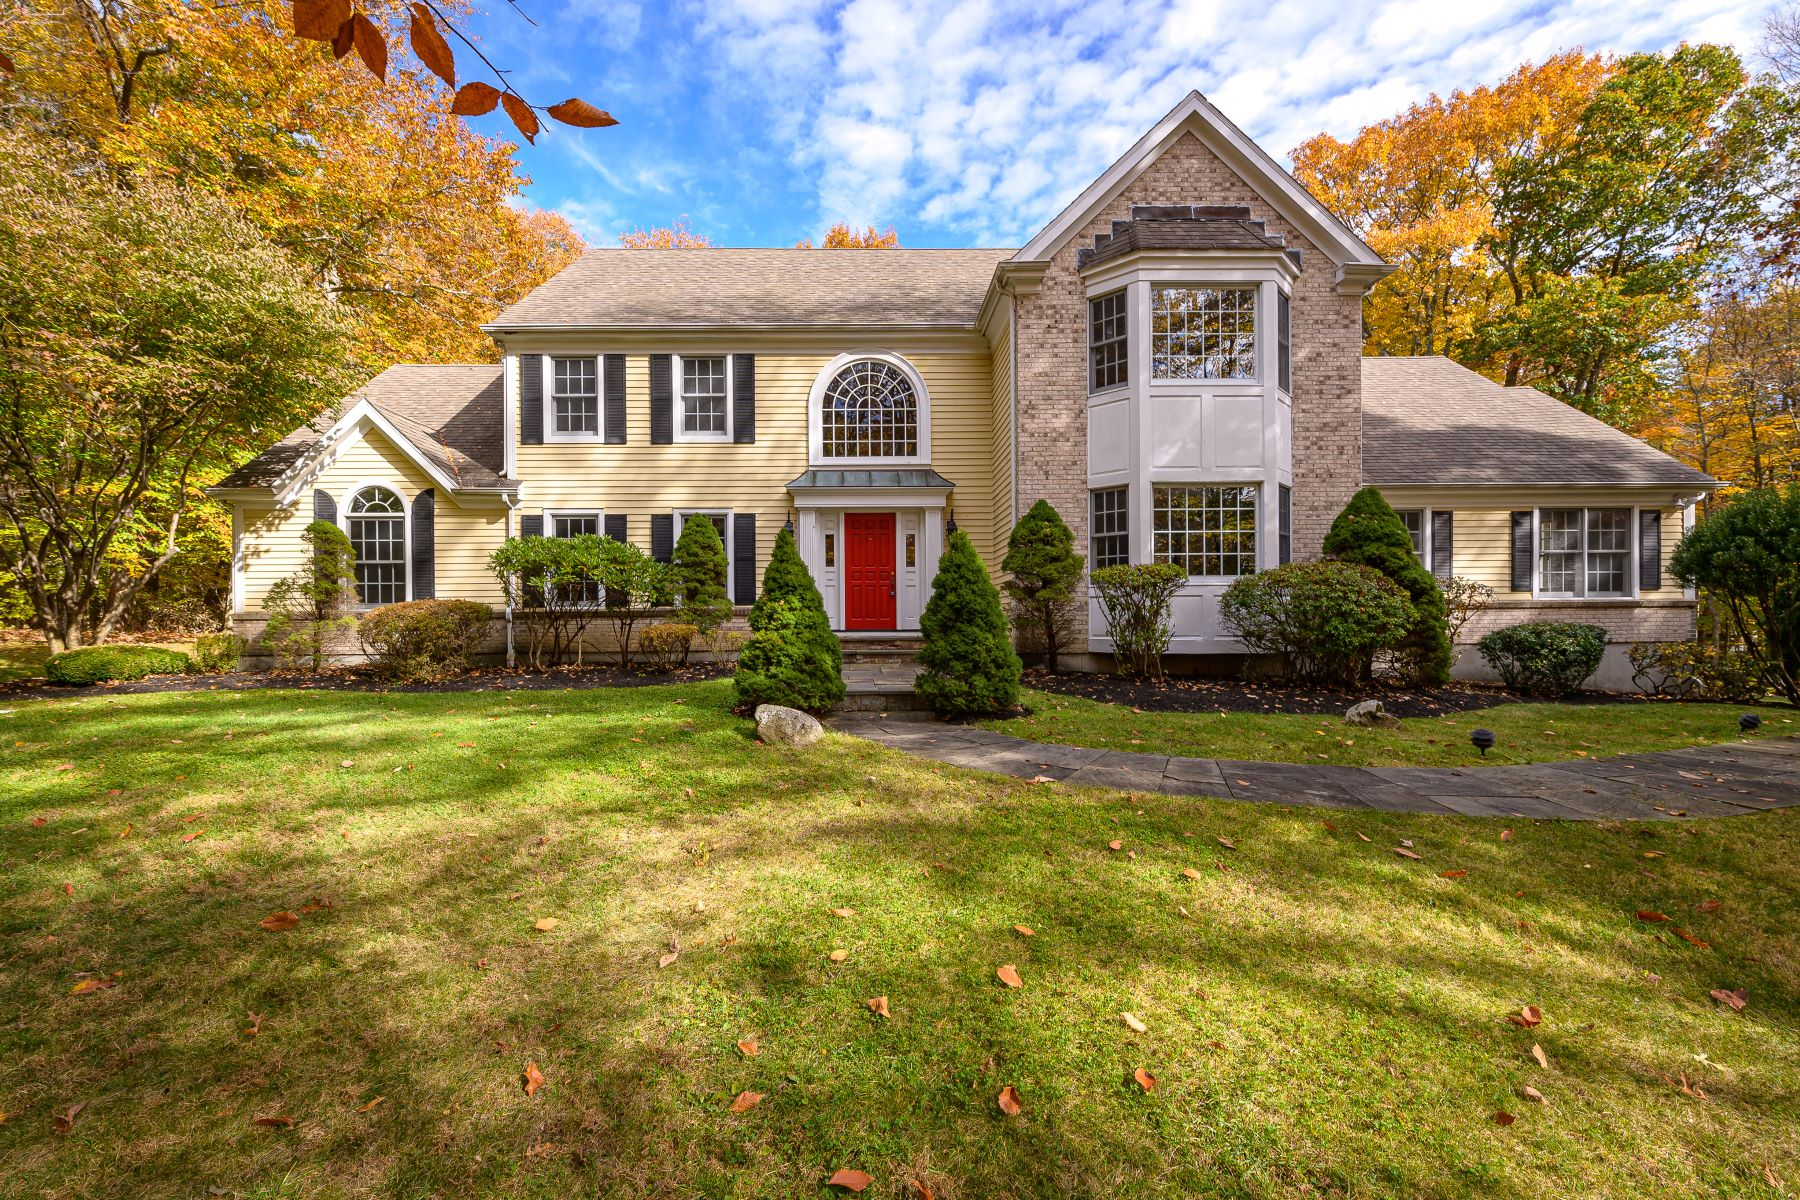 Single Family Homes for Sale at South Ridgefield Colonial 38 South Ridge Court Ridgefield, Connecticut 06877 United States